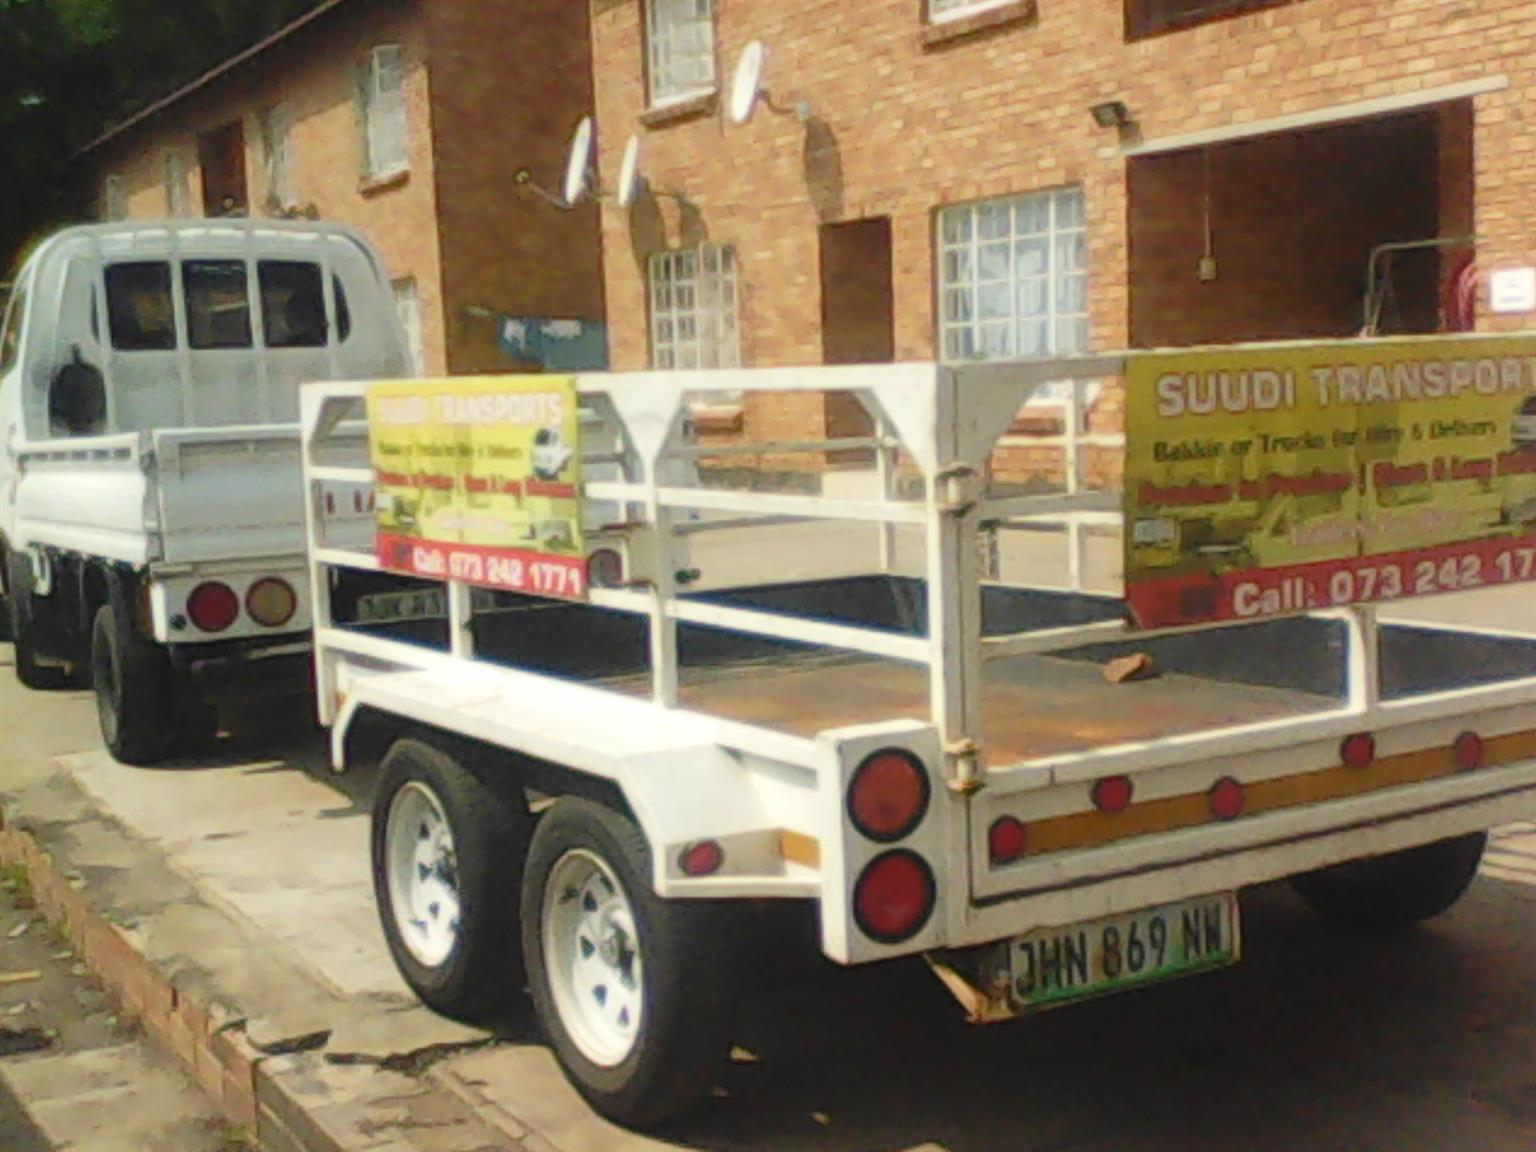 Suudi transport & trailers for hire